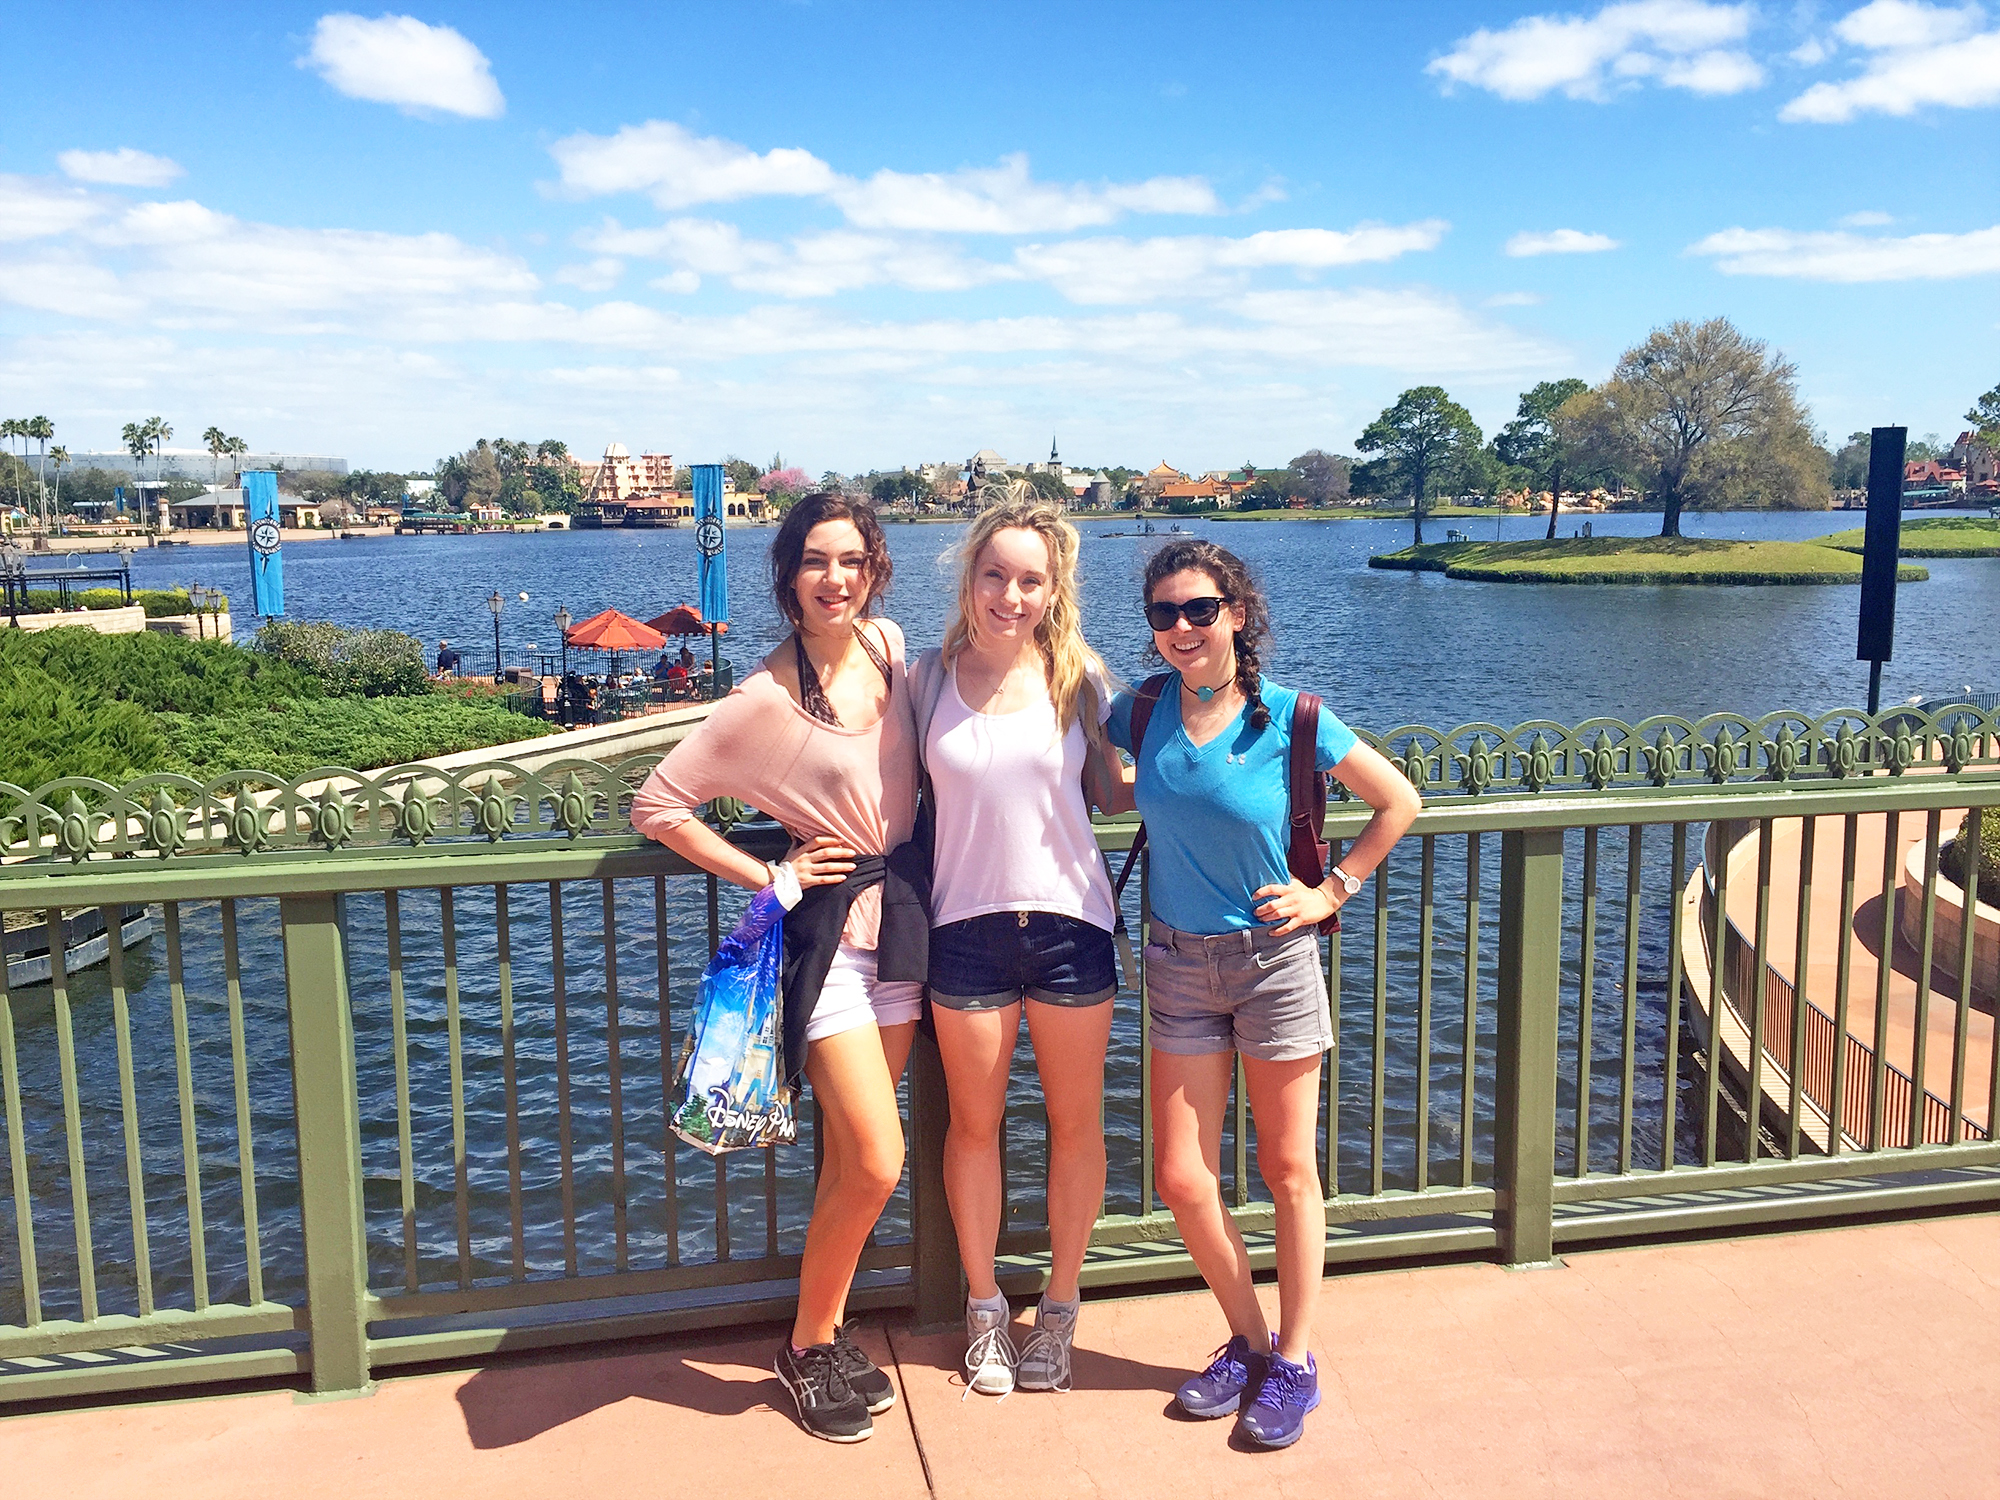 Friends Epcot.jpg